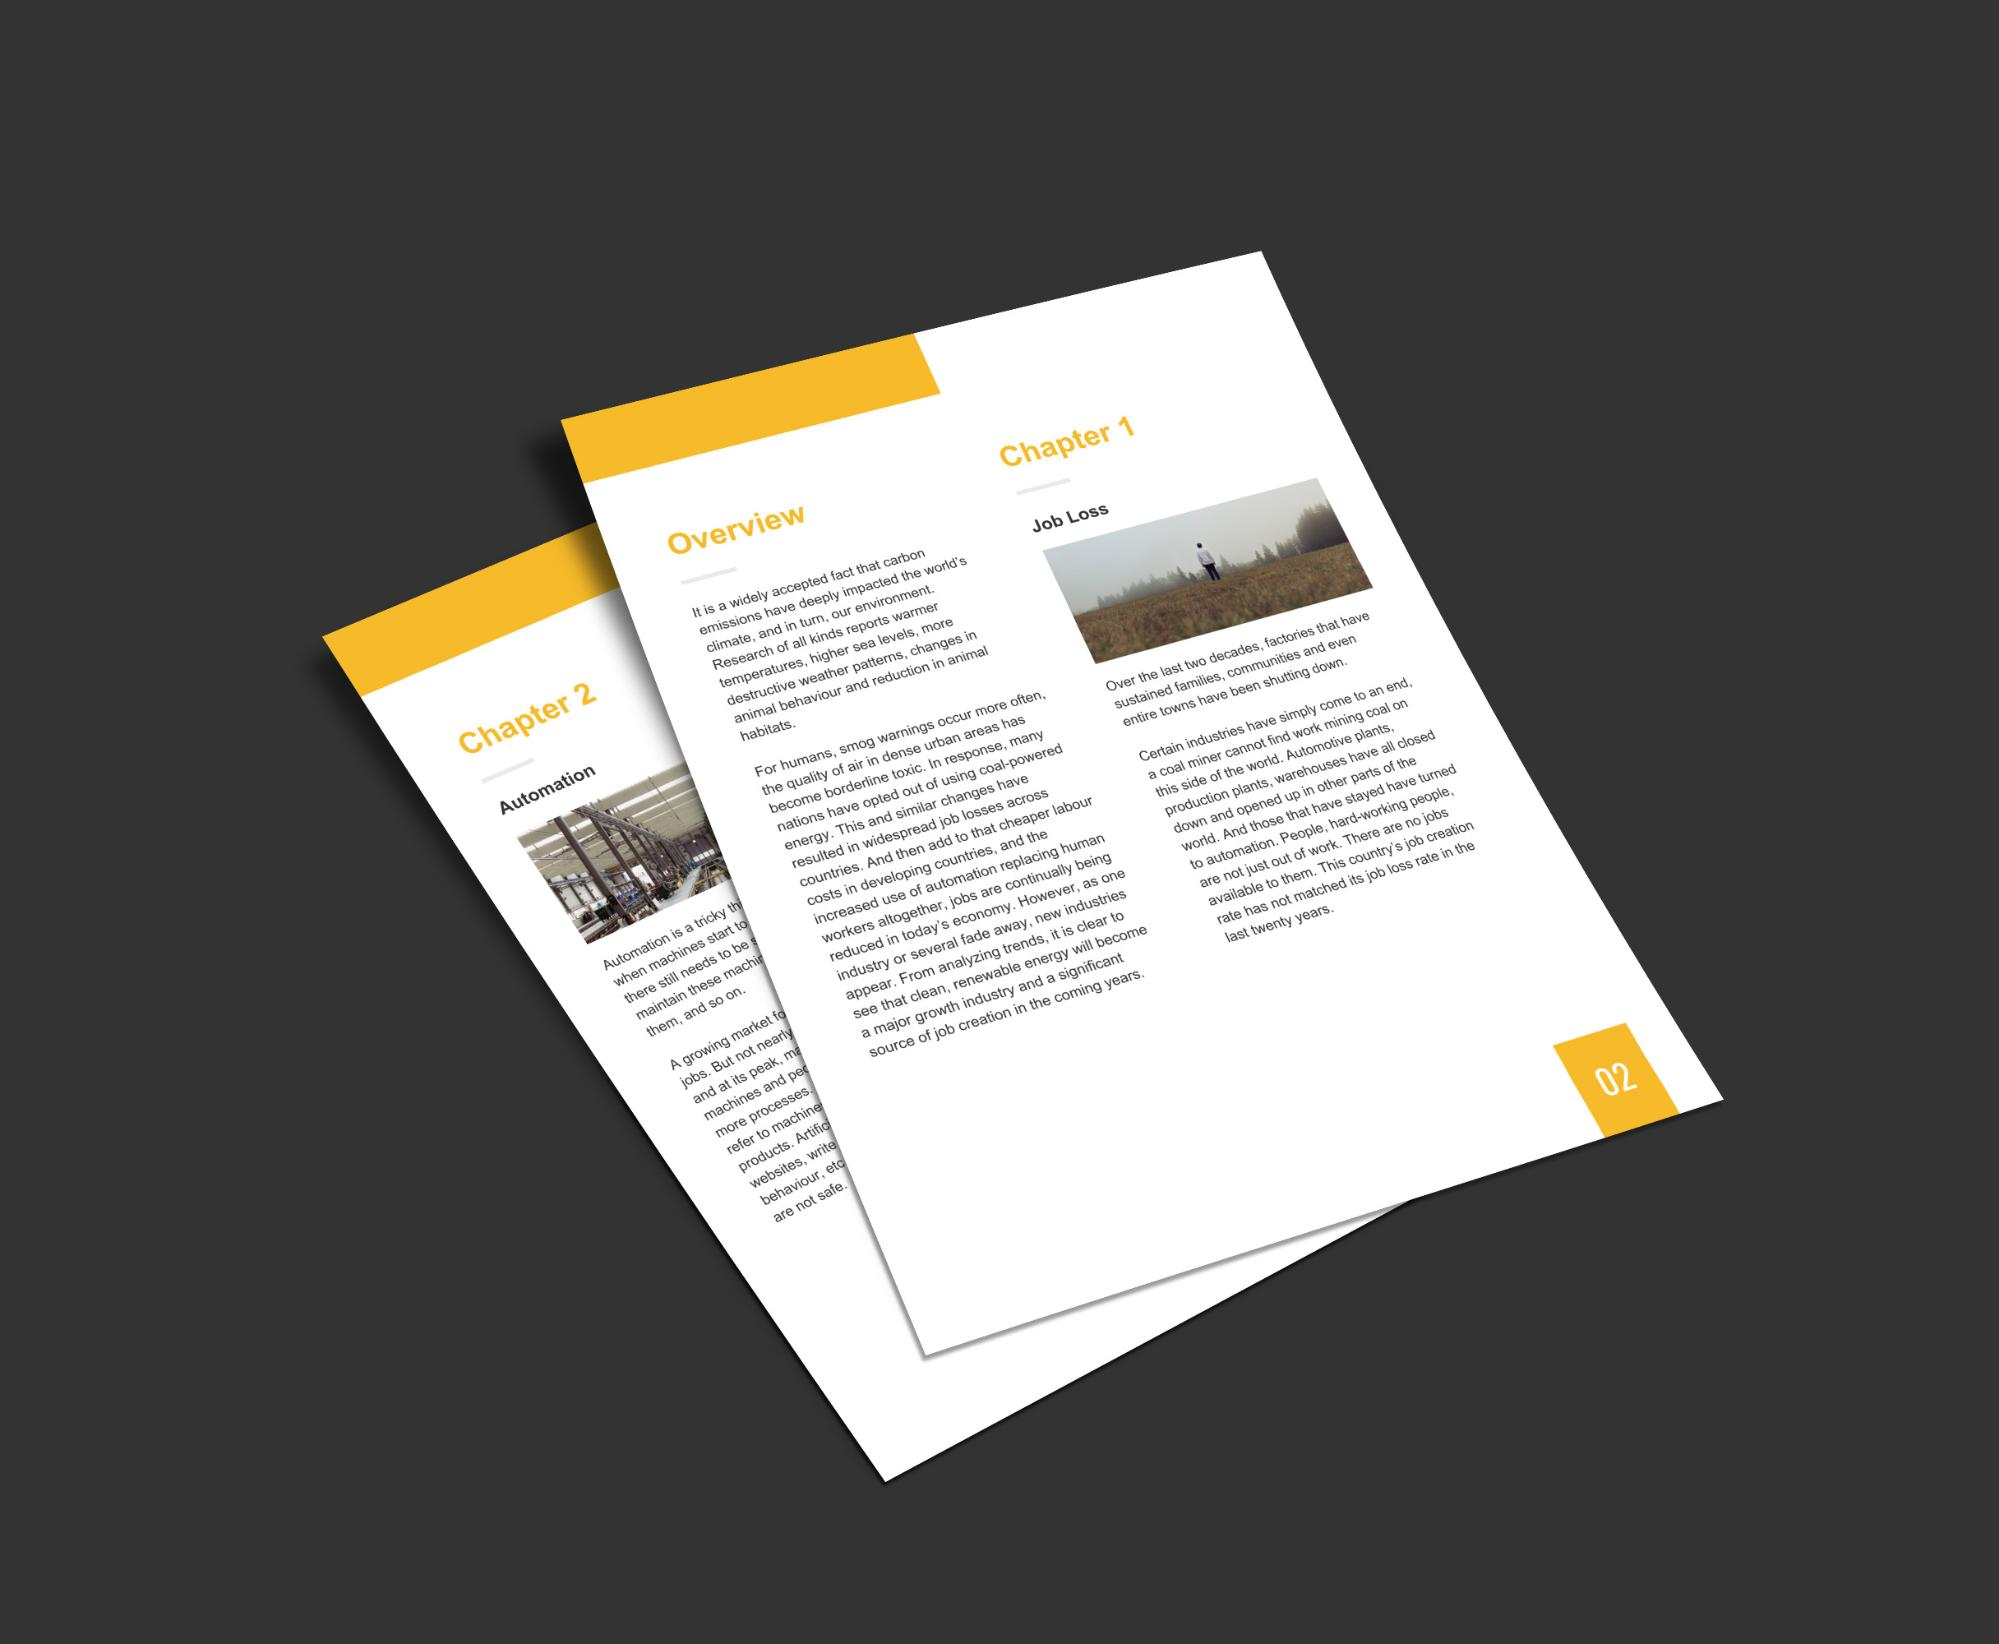 20 page turning white paper examples and design tips venngage